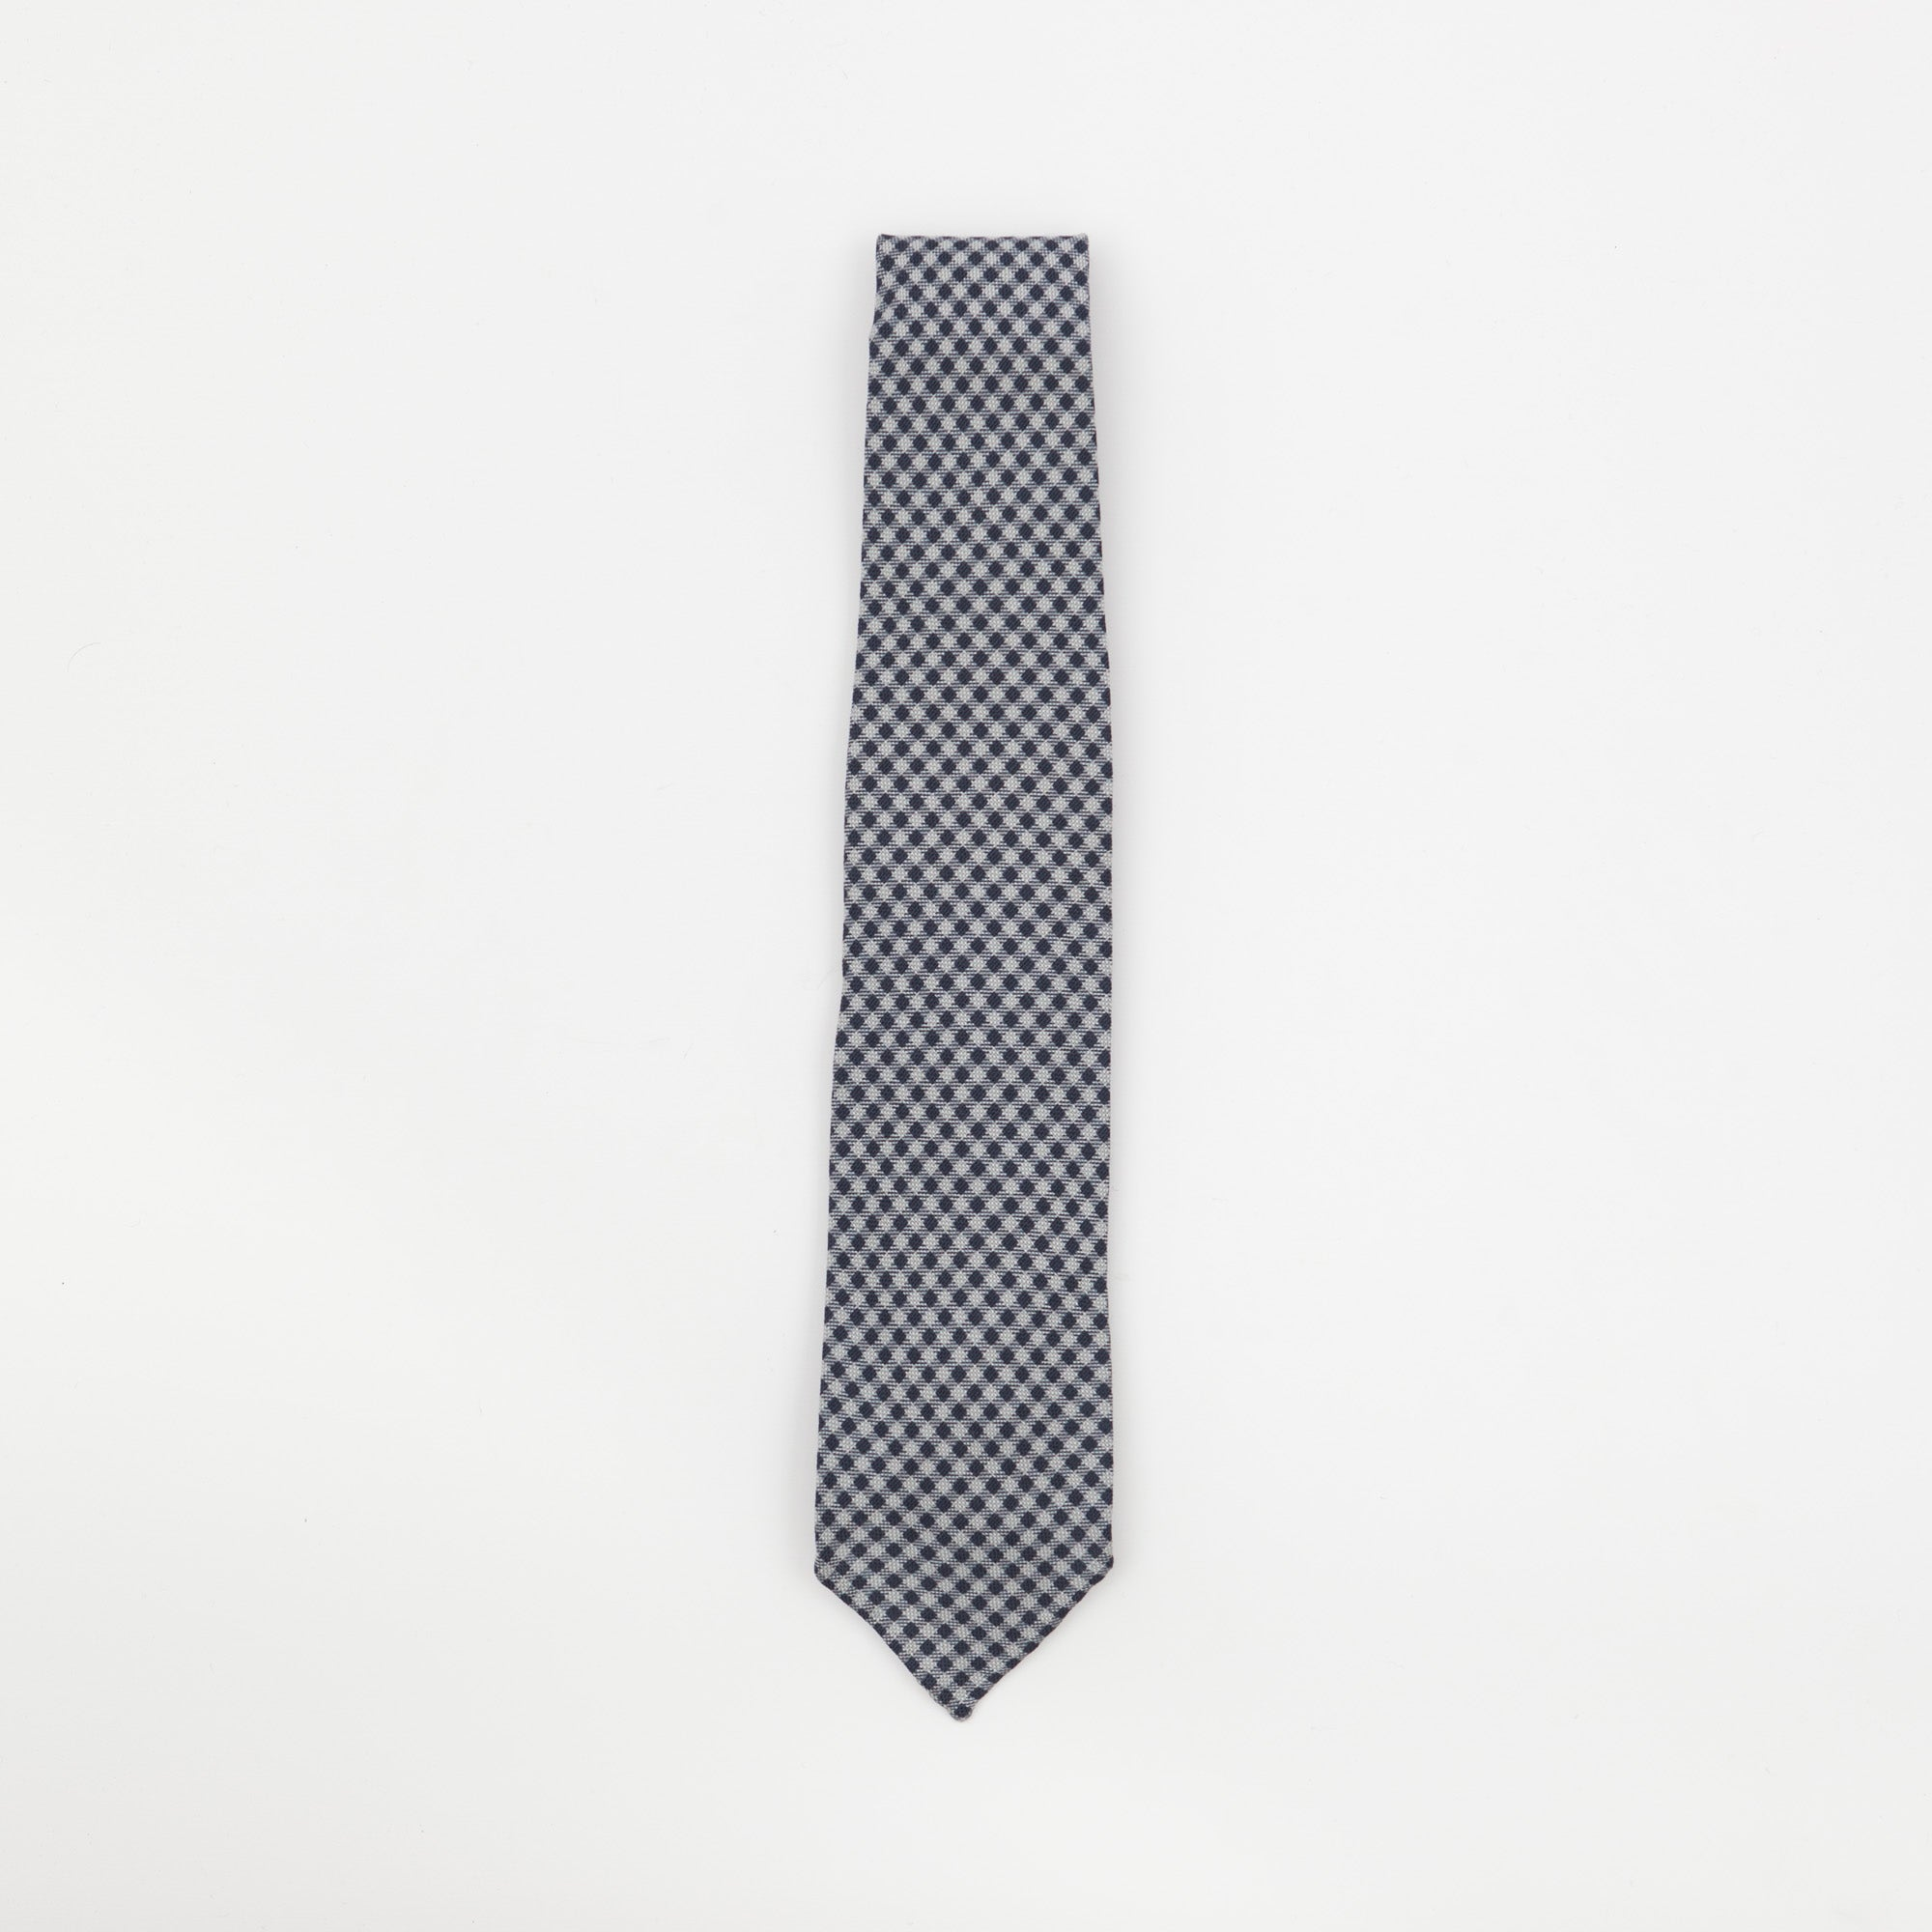 Diamond Checked Tie